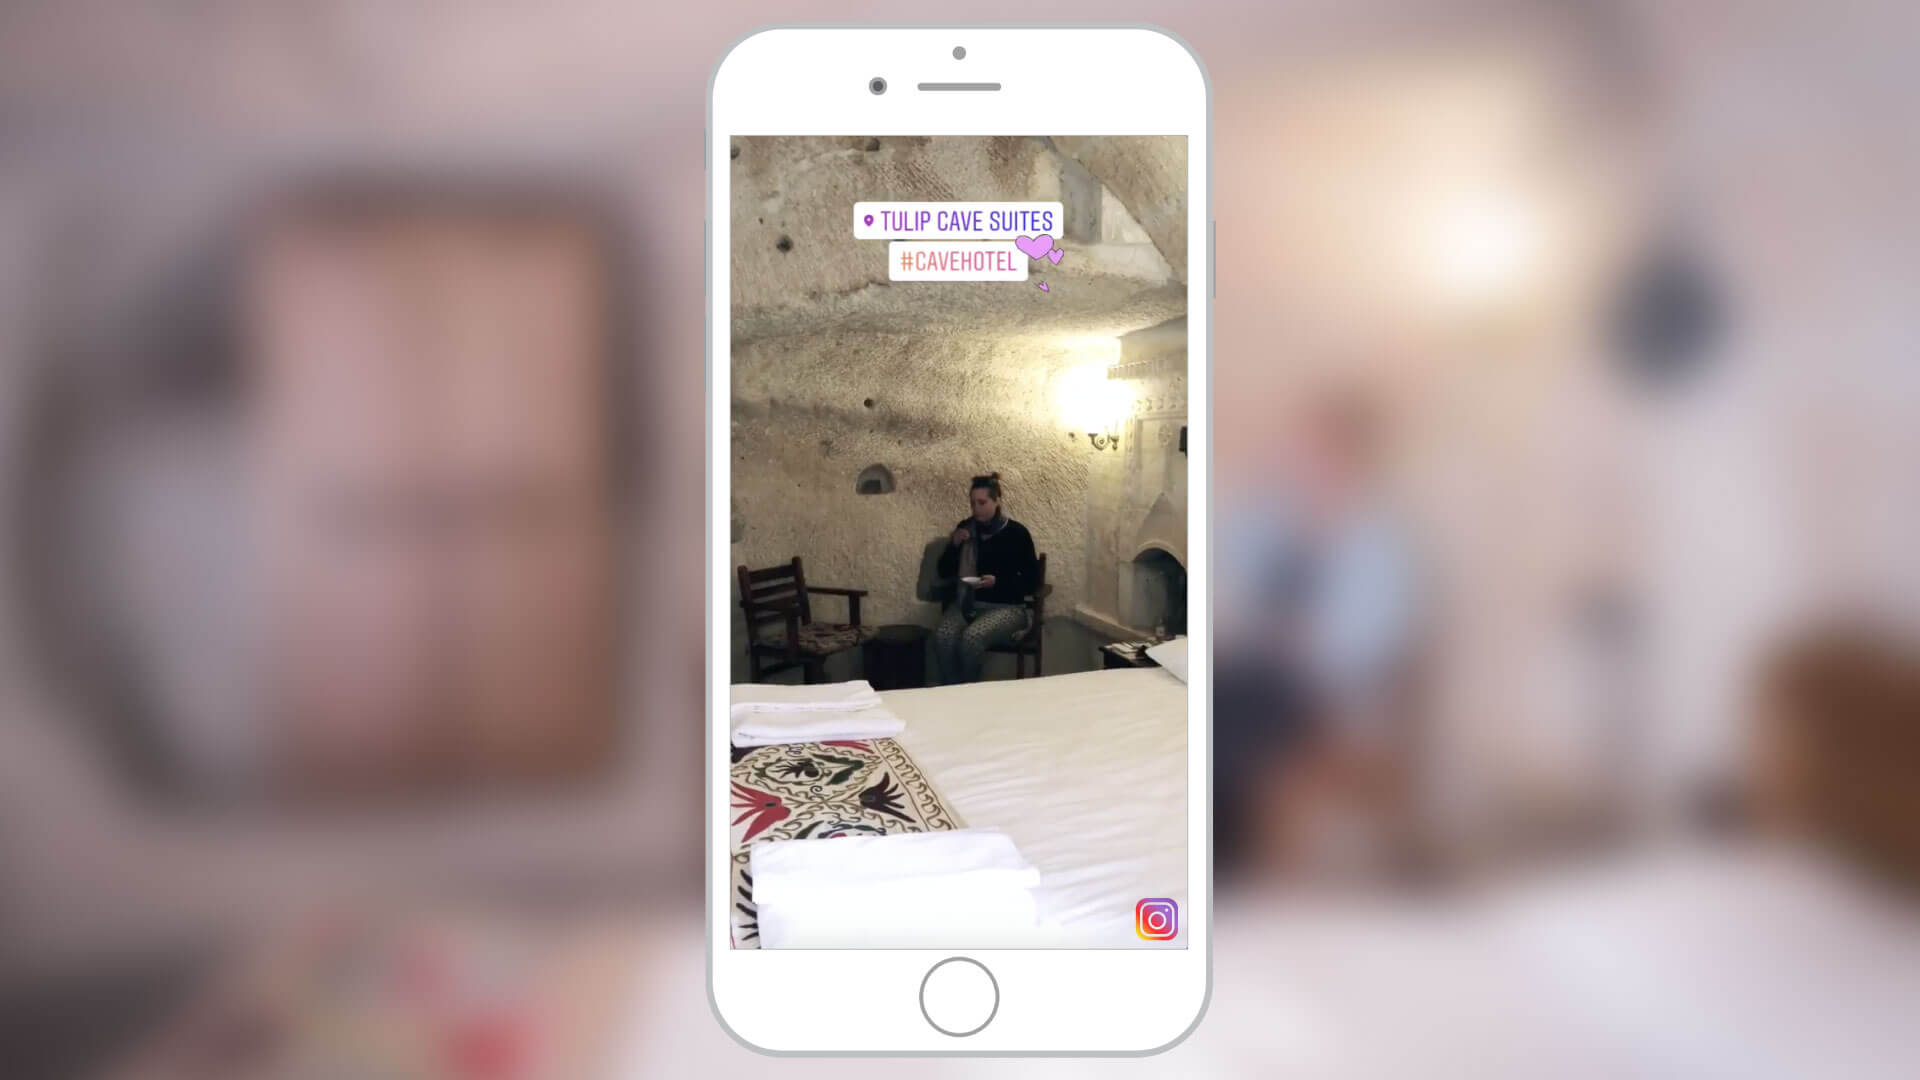 Instagram Stories Content for Tulip Cave Suites